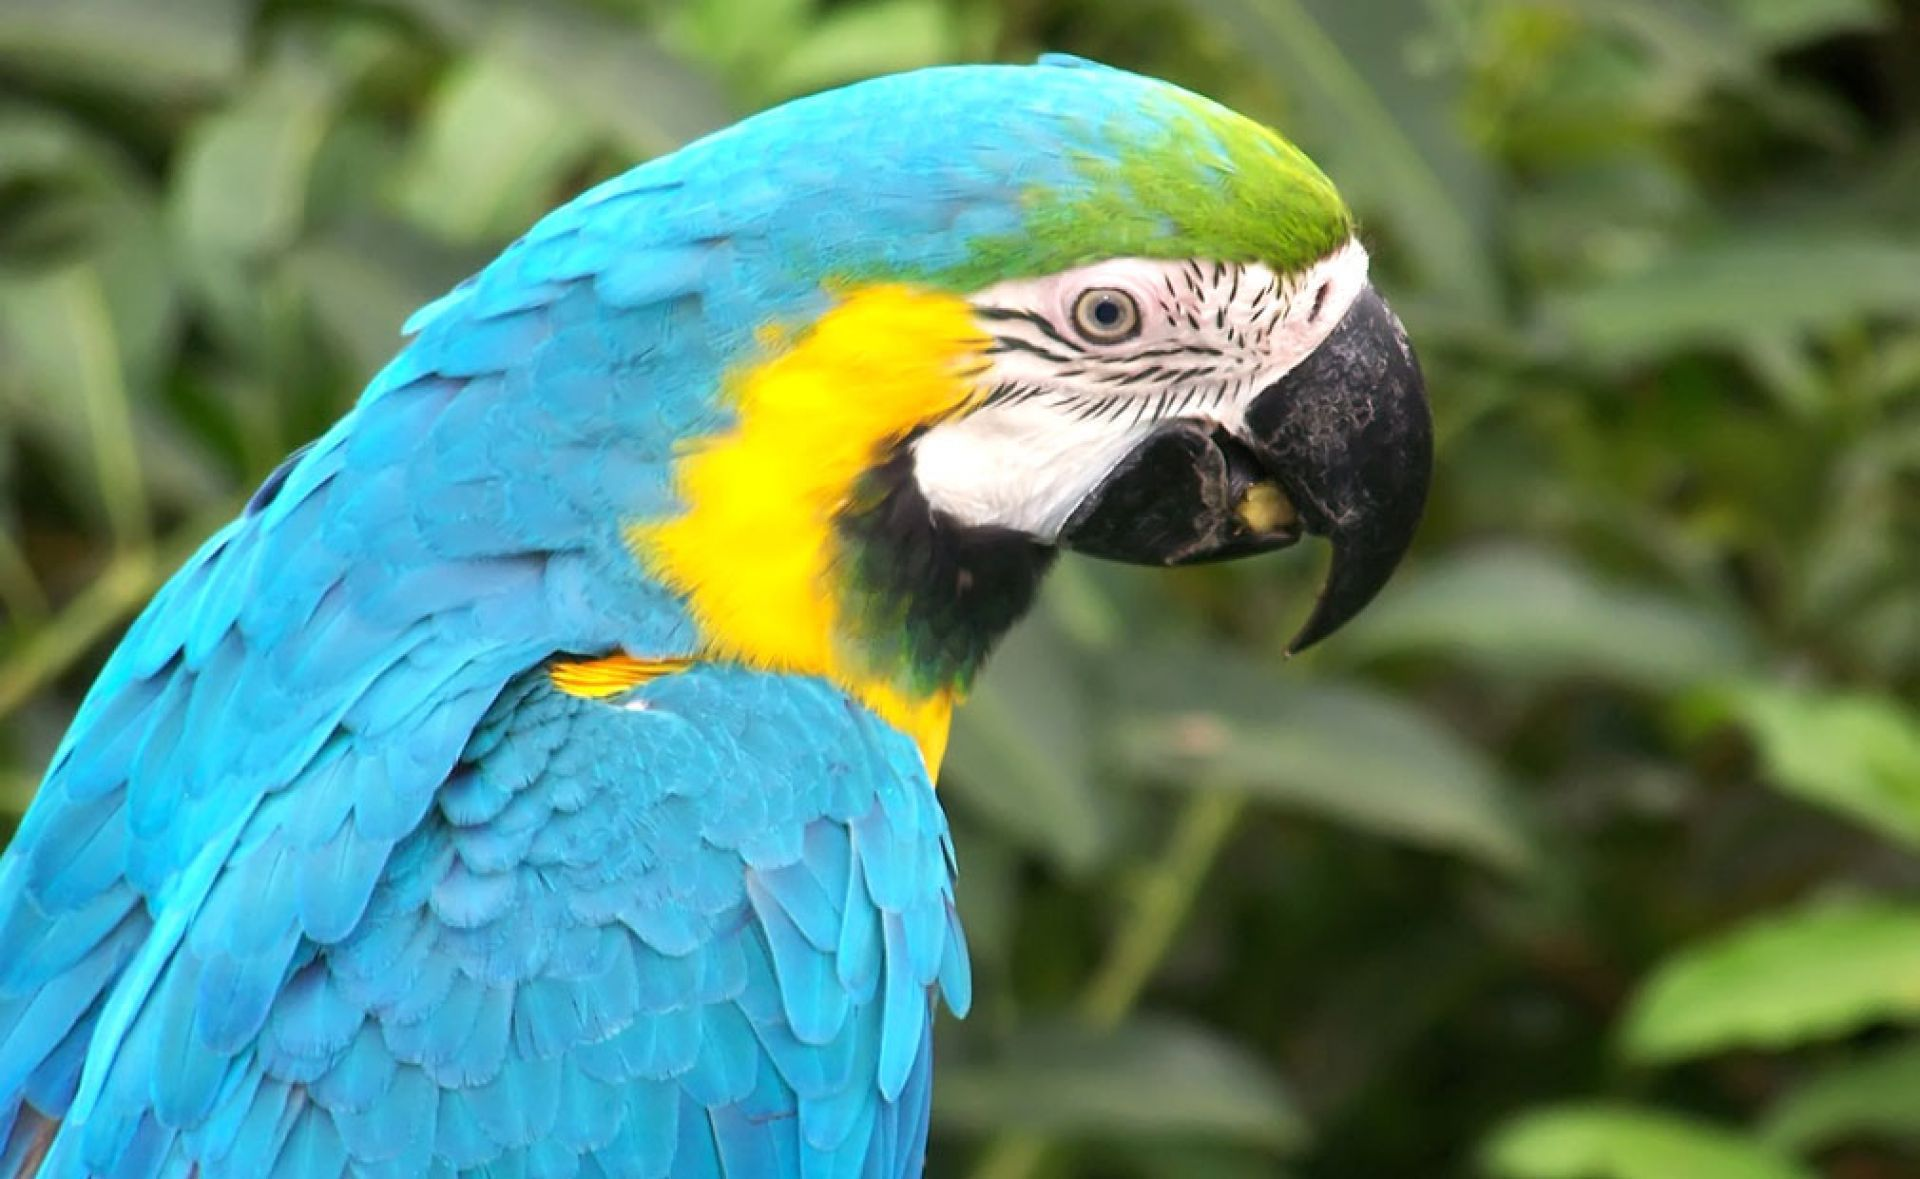 Aves Exoticas Wallpaper